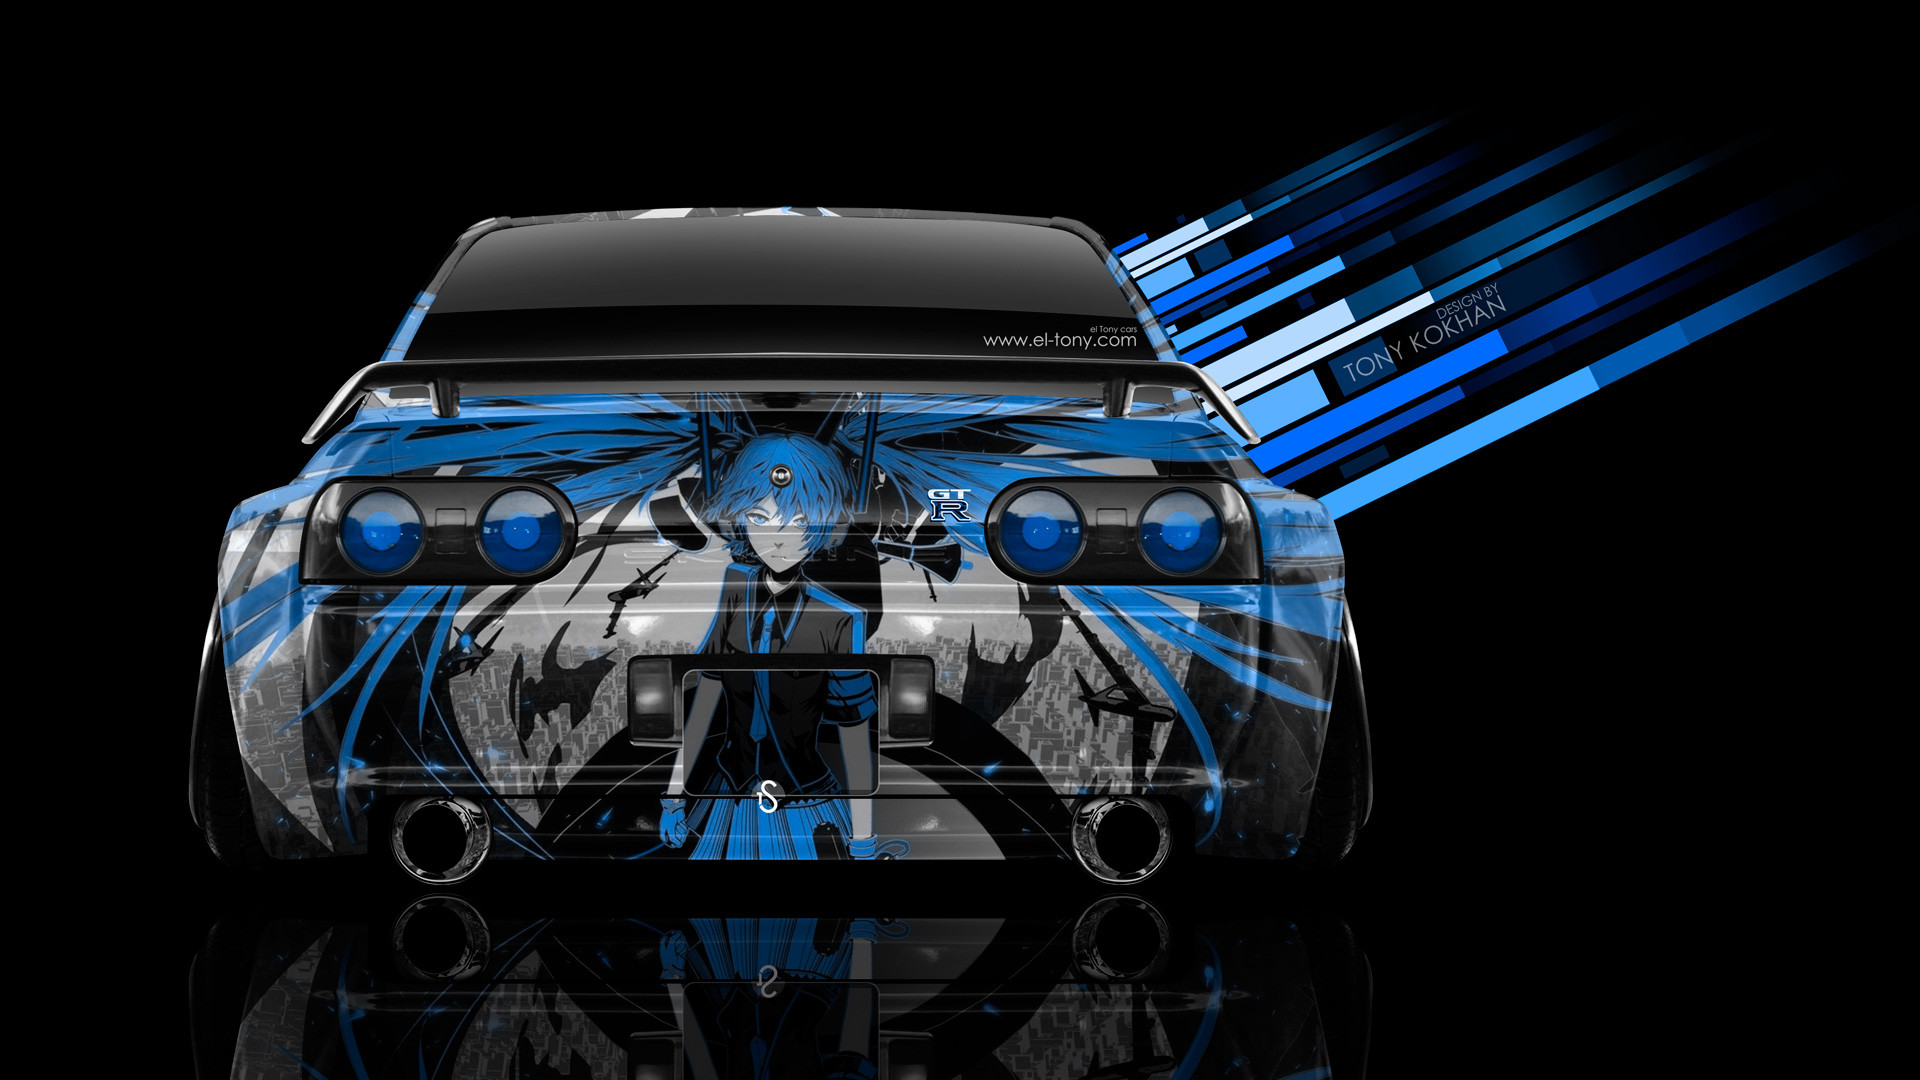 … Nissan-Skyline-GTR-R32-JDM-Back-Anime-Aerography- …